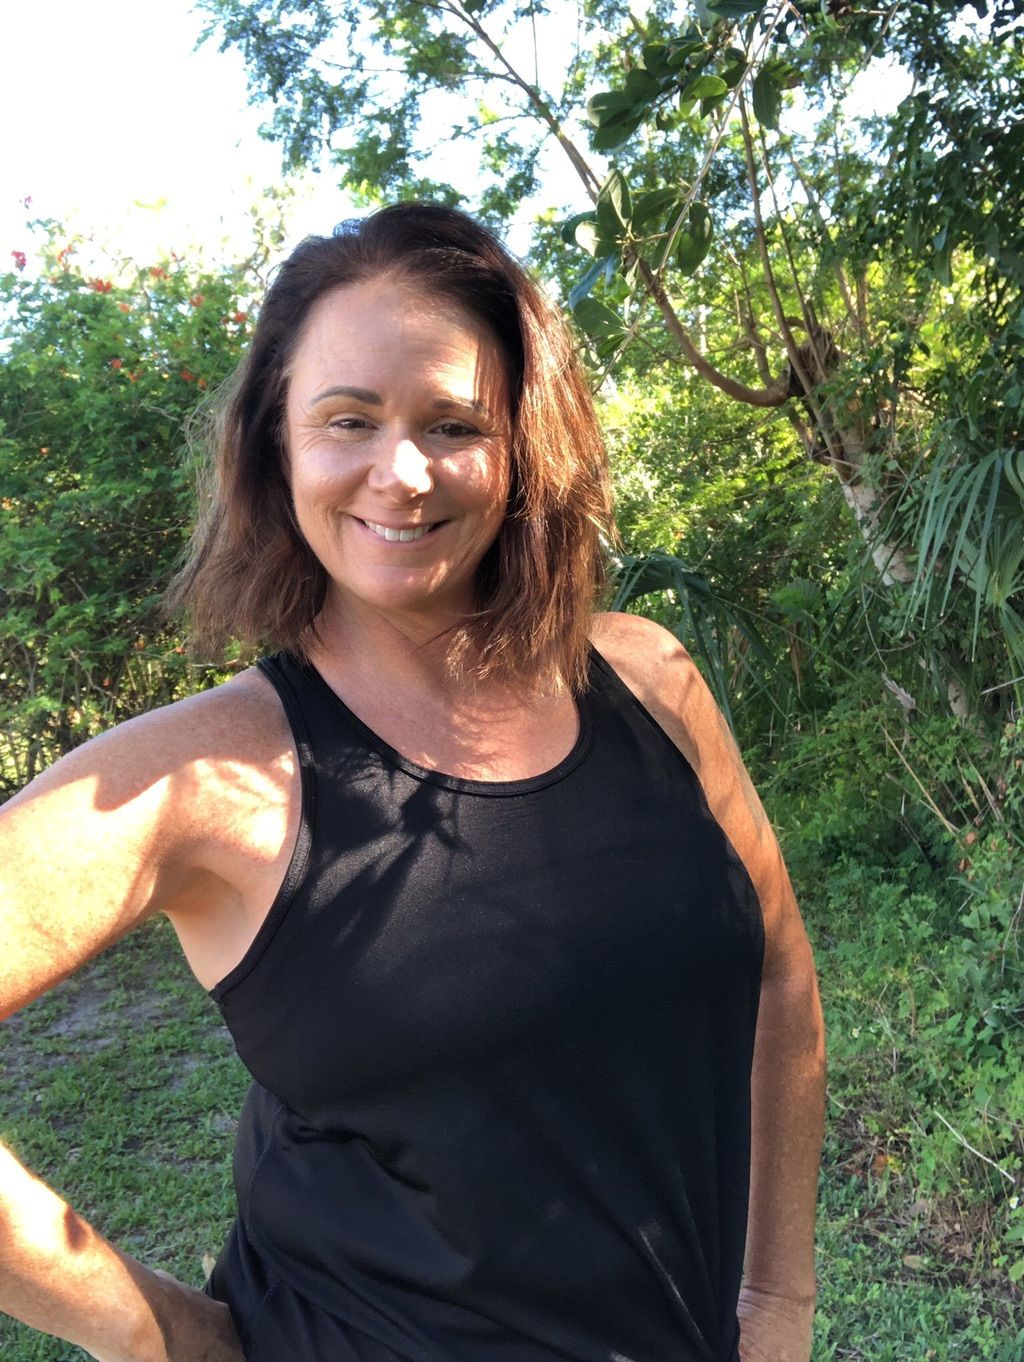 SWFL Fitness By Erica